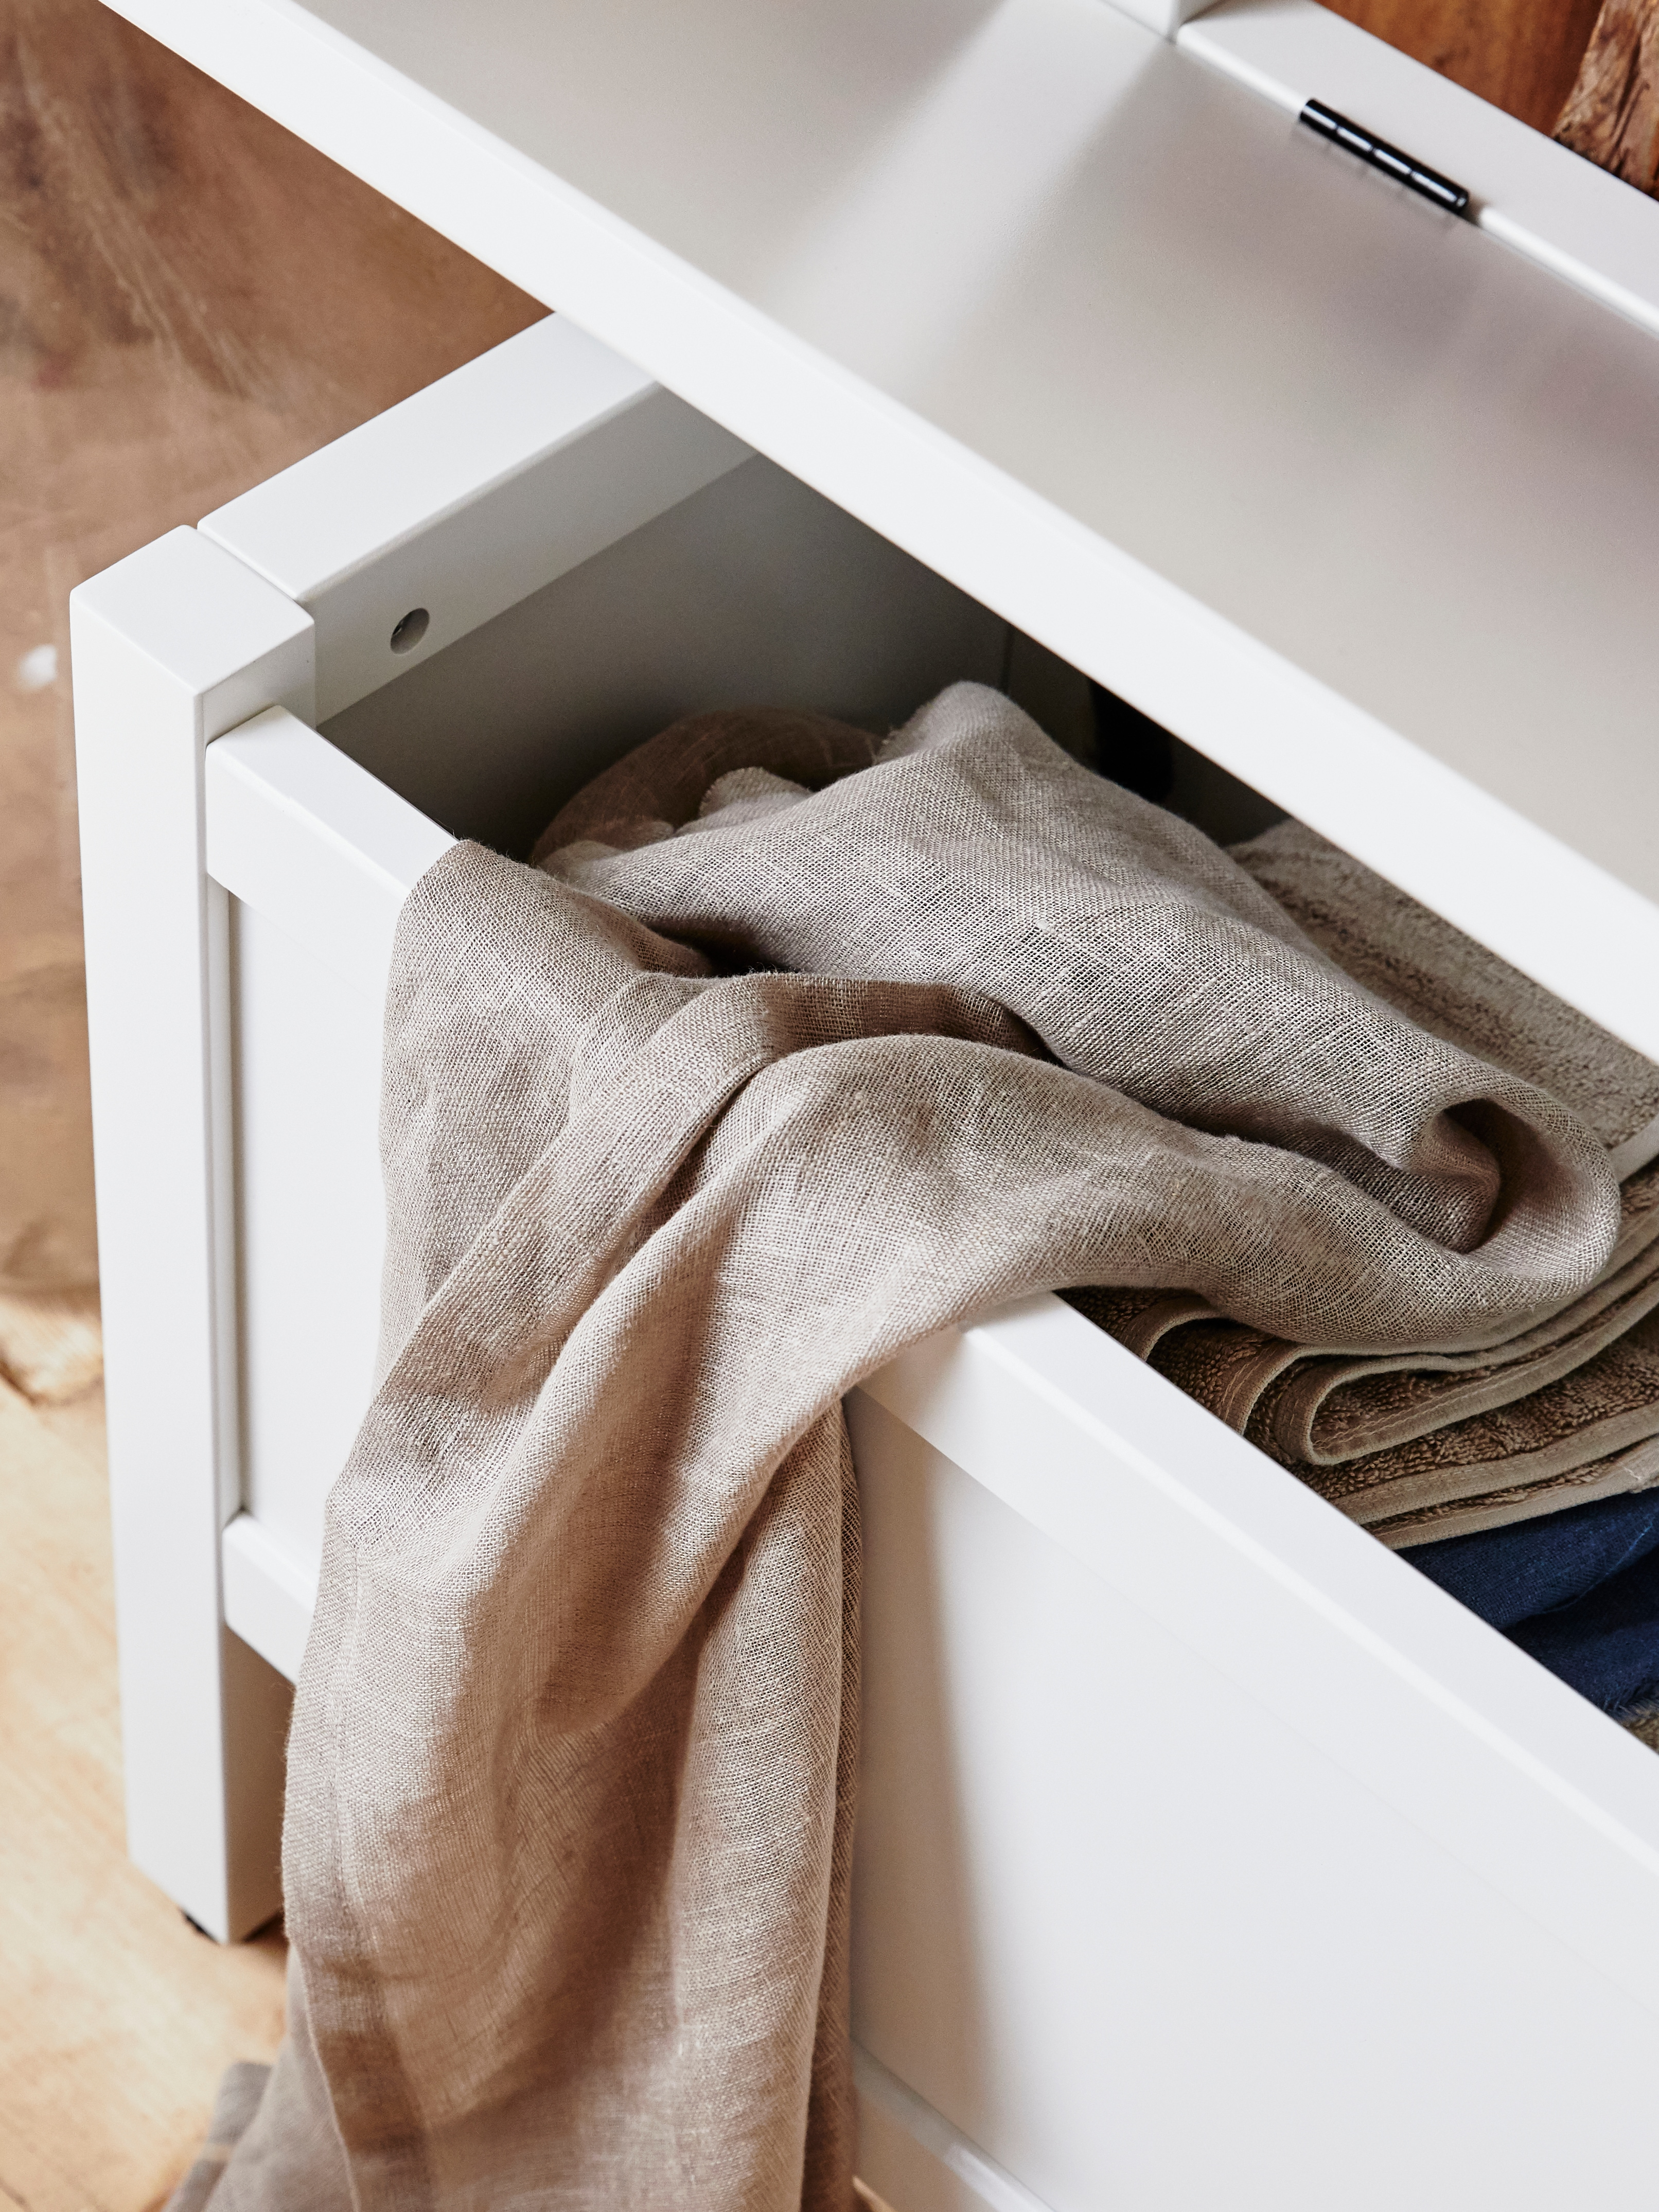 A close-up shows a lifted, hinged top, and beige towels inside a white HEMNES storage bench, with towel rail.